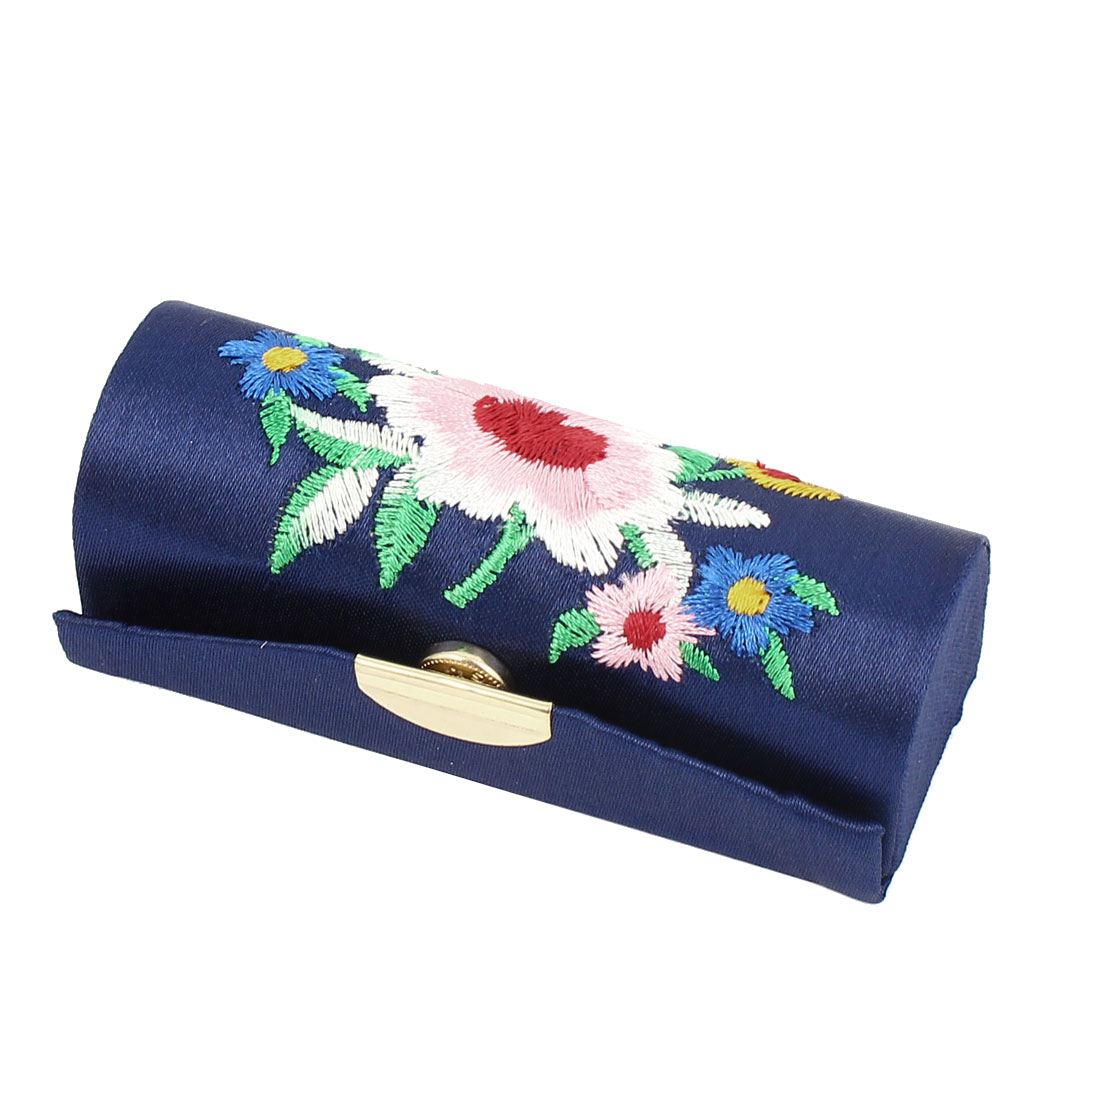 Lady Floral Embroidery Mirror Lipgloss Lip Stick Case Jewelry Lipstick Box Holder Dark Blue